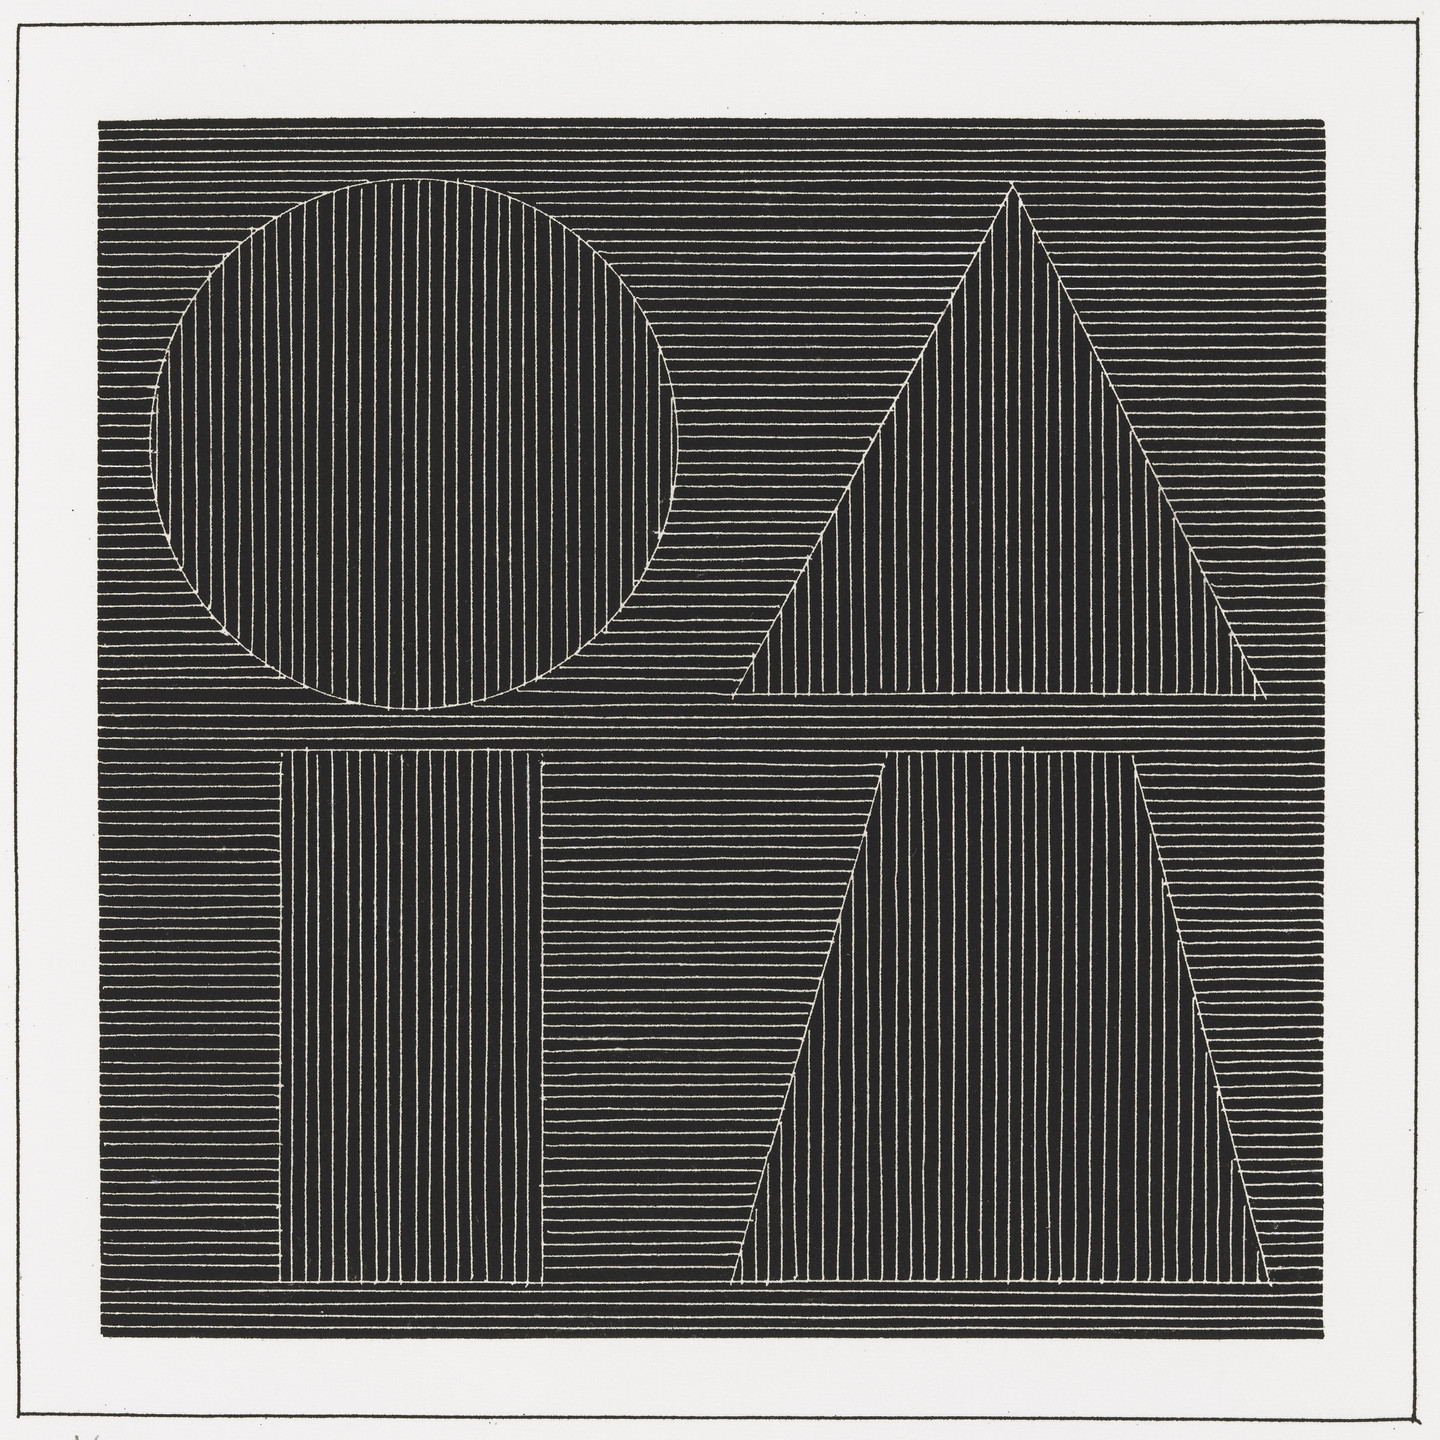 Sol LeWitt. Plate (folio 53) from Six Geometric Figures and All Their Combinations, Volume I. 1980